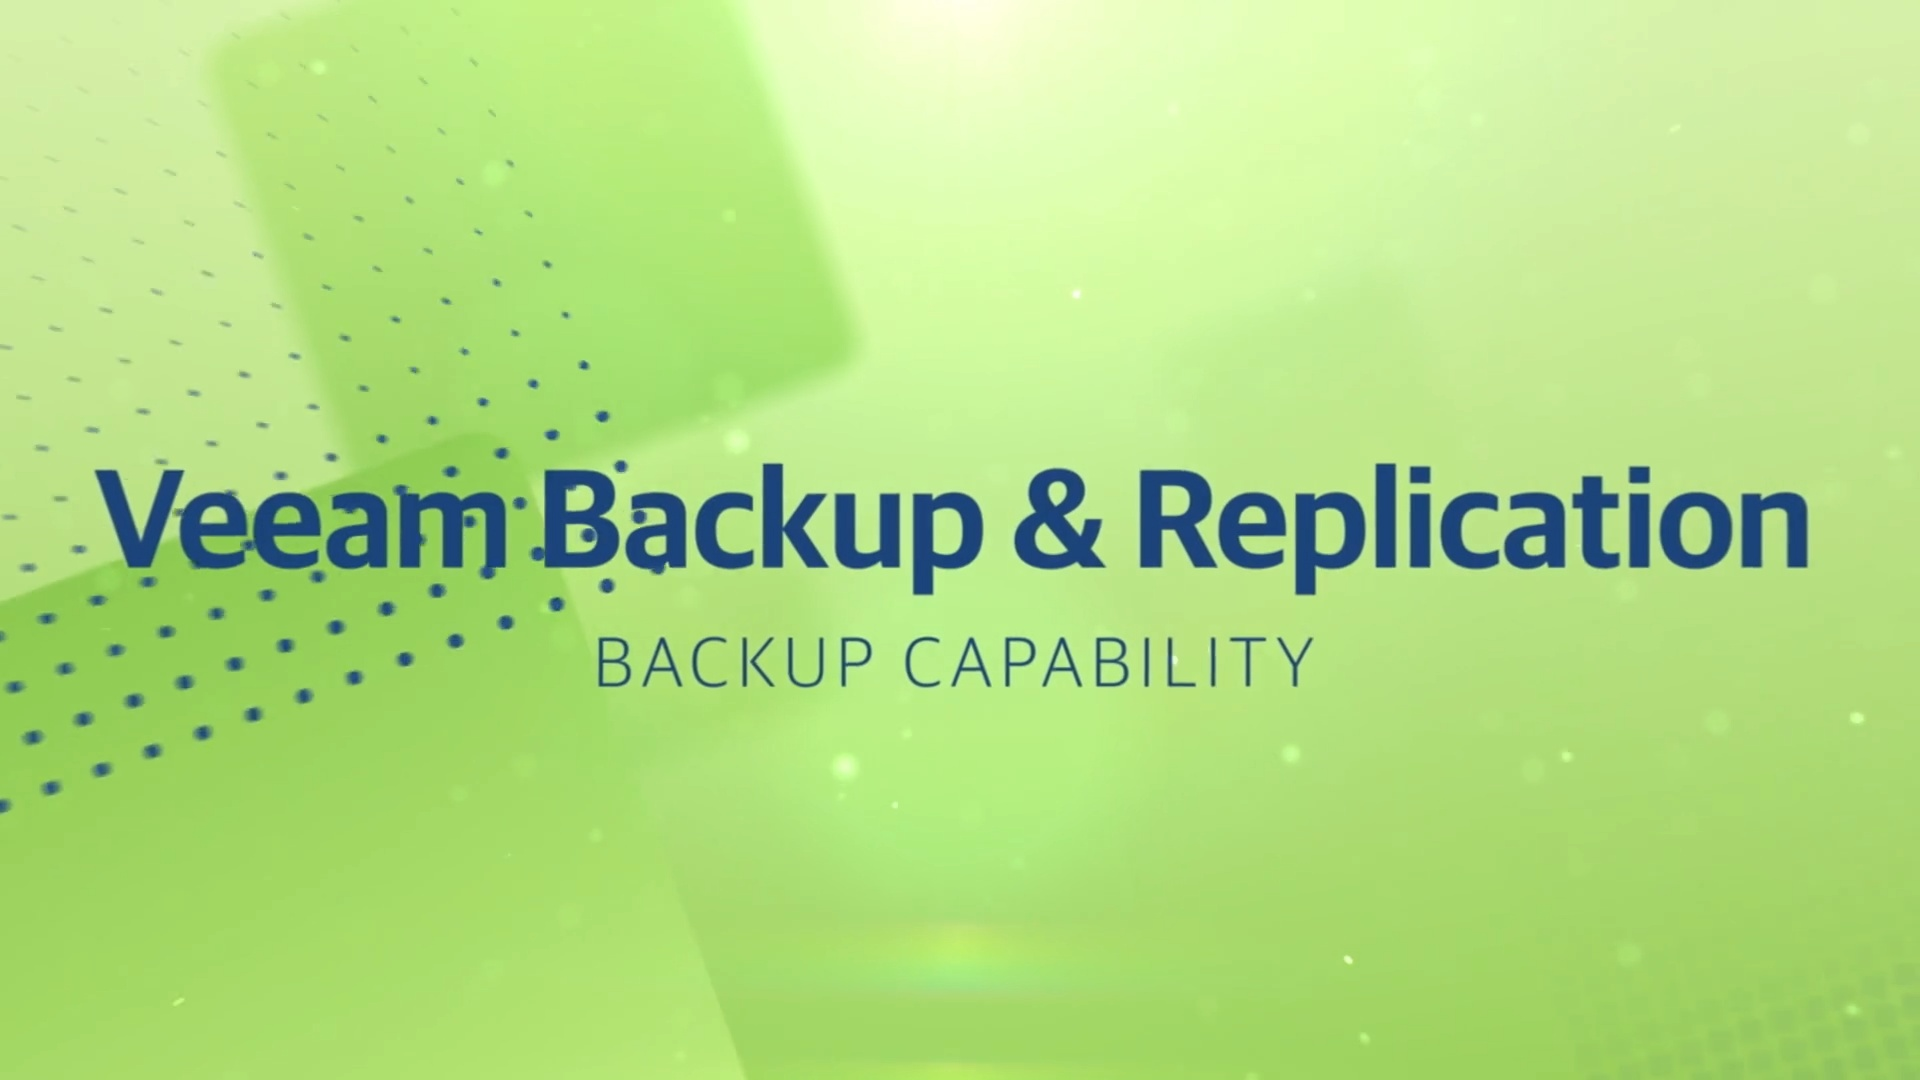 Product Launch - v11 - VBR - Overview video - Backup Capability